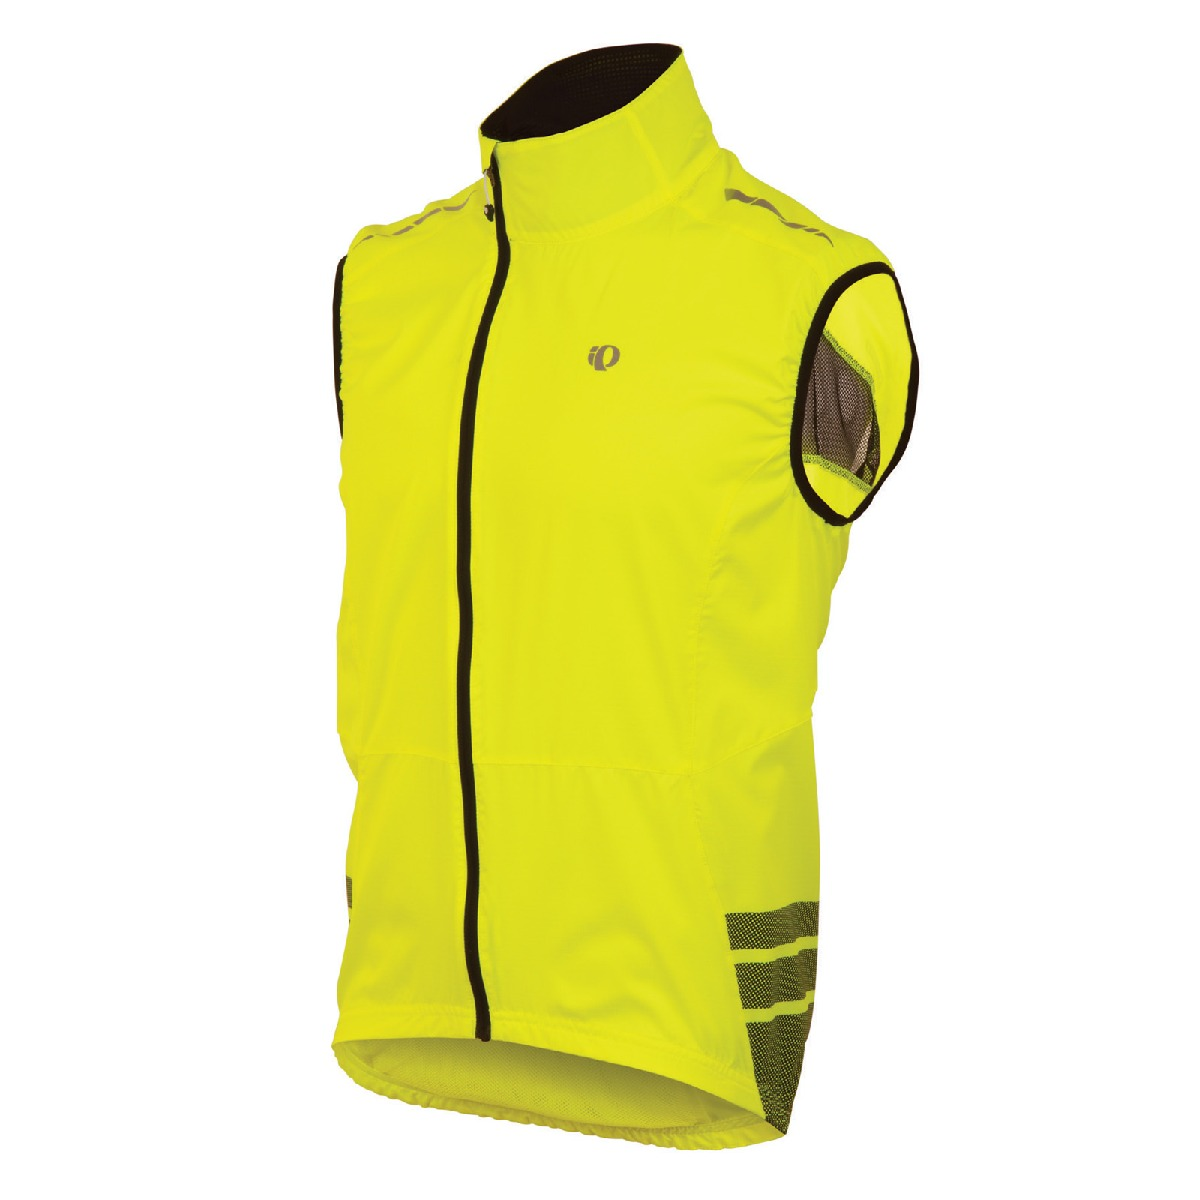 Pearl Izumi Elite Barrier Cycling Vest Men's Size L ScreamingYellow U.S.A. & Canada